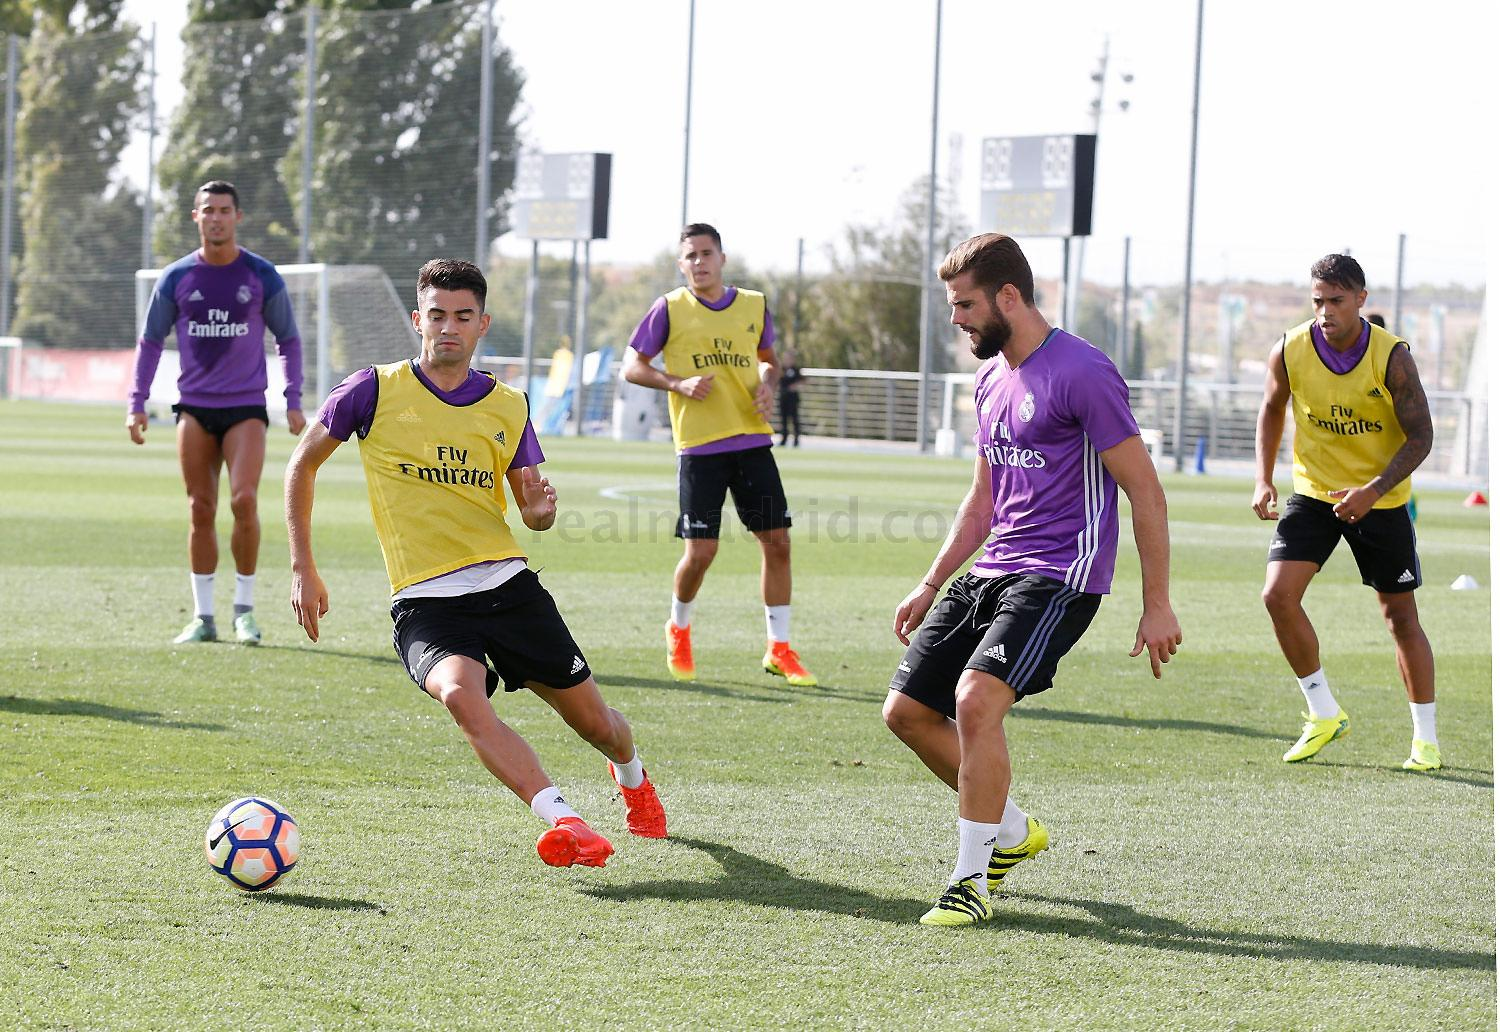 Real Madrid - Entrenamiento del Real Madrid - 06-09-2016